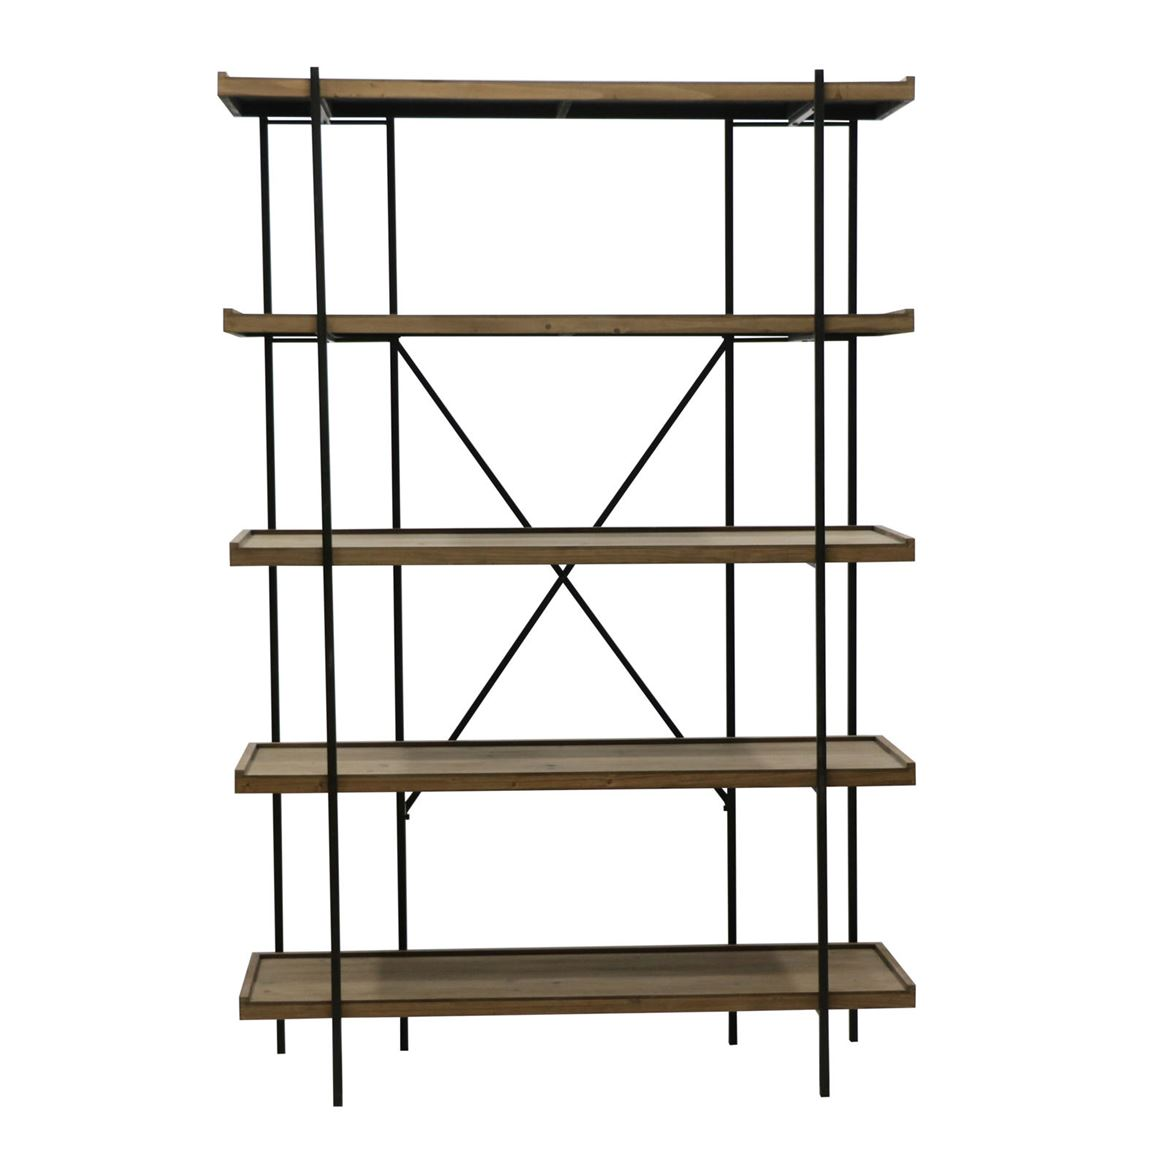 BIG Estante de parede natural H 180 x W 120 x D 38,5 cm_big-estante-de-parede-natural-h-180-x-w-120-x-d-38,5-cm